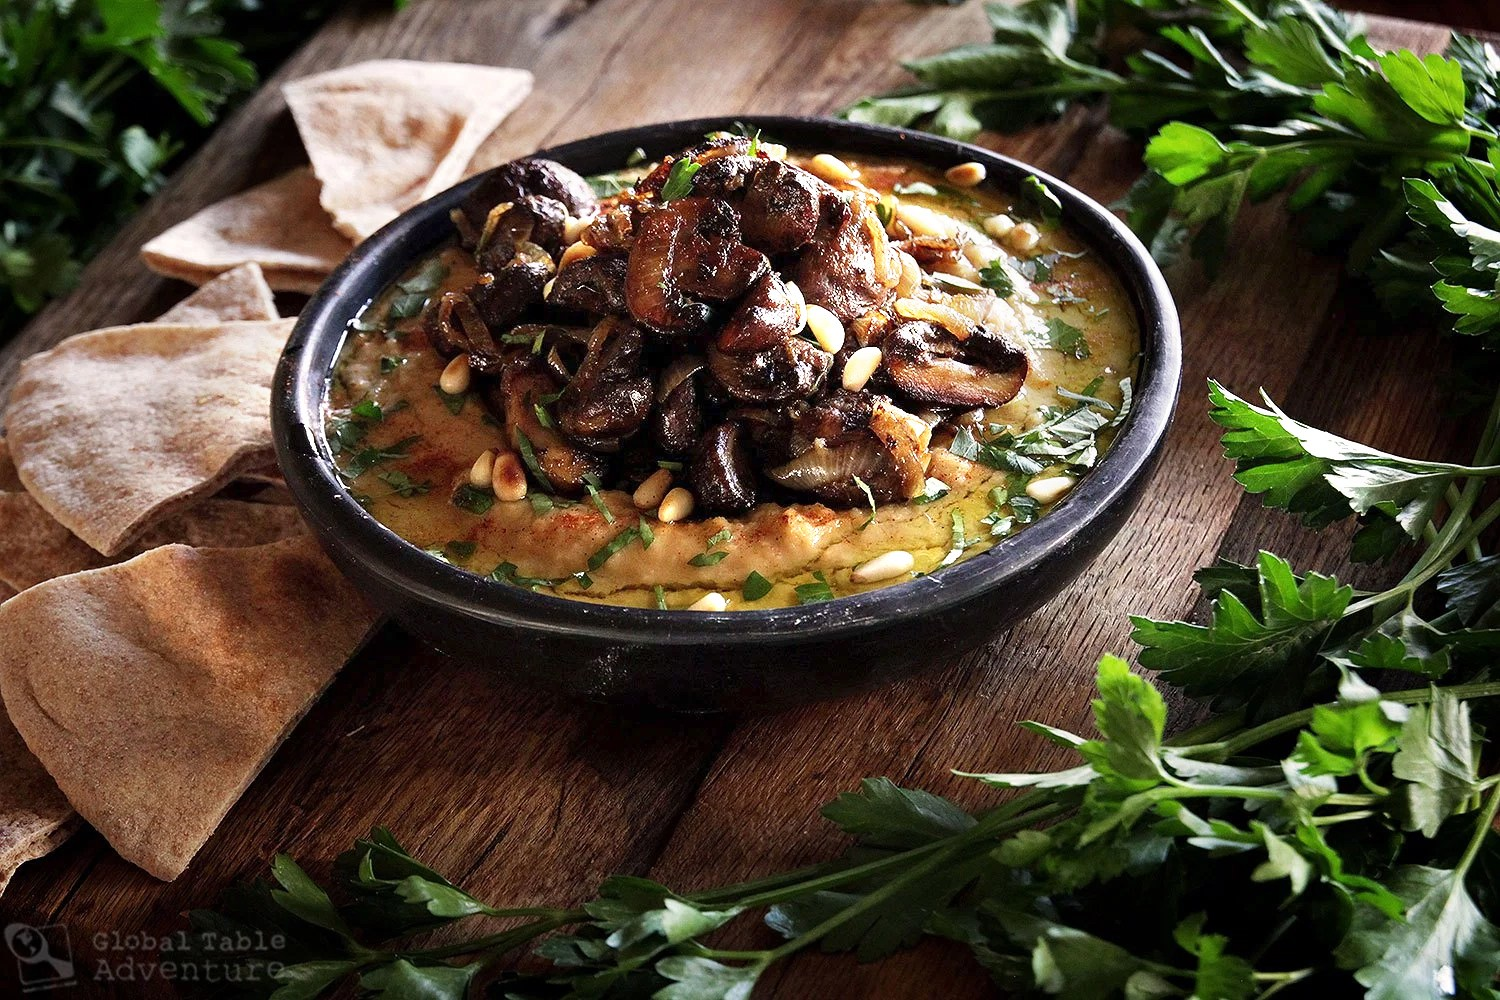 hummus-with-caramelized-onion-and-mushroom-by-GlobalTableAdventure